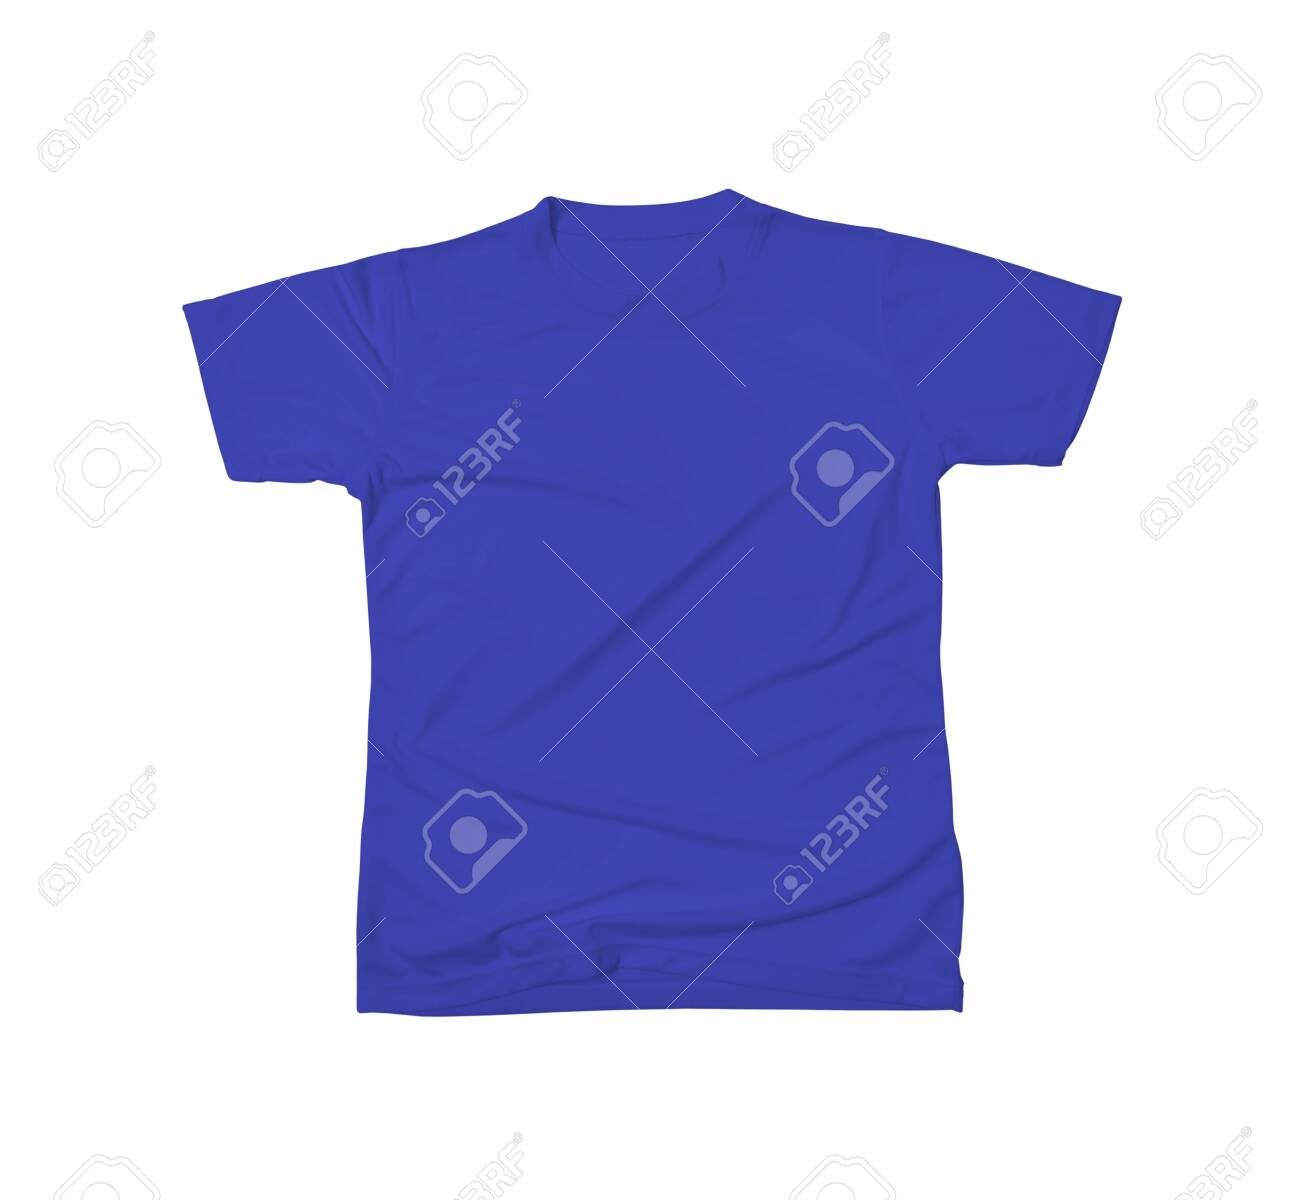 Designable Tshirt Mockup In Royal Blue Color To Help You Customize